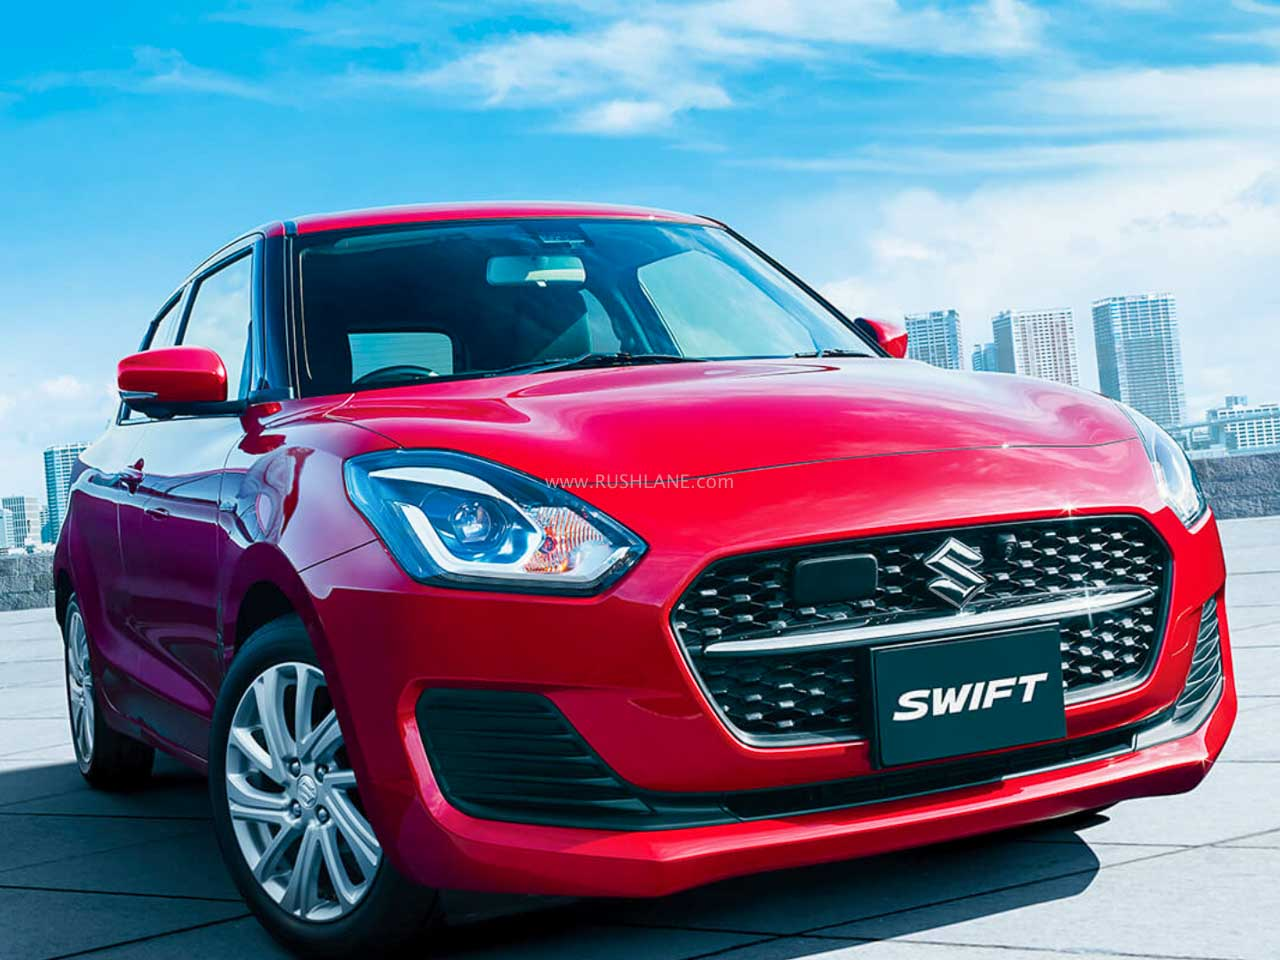 2021 Maruti Swift to offer more power and efficiency - Details